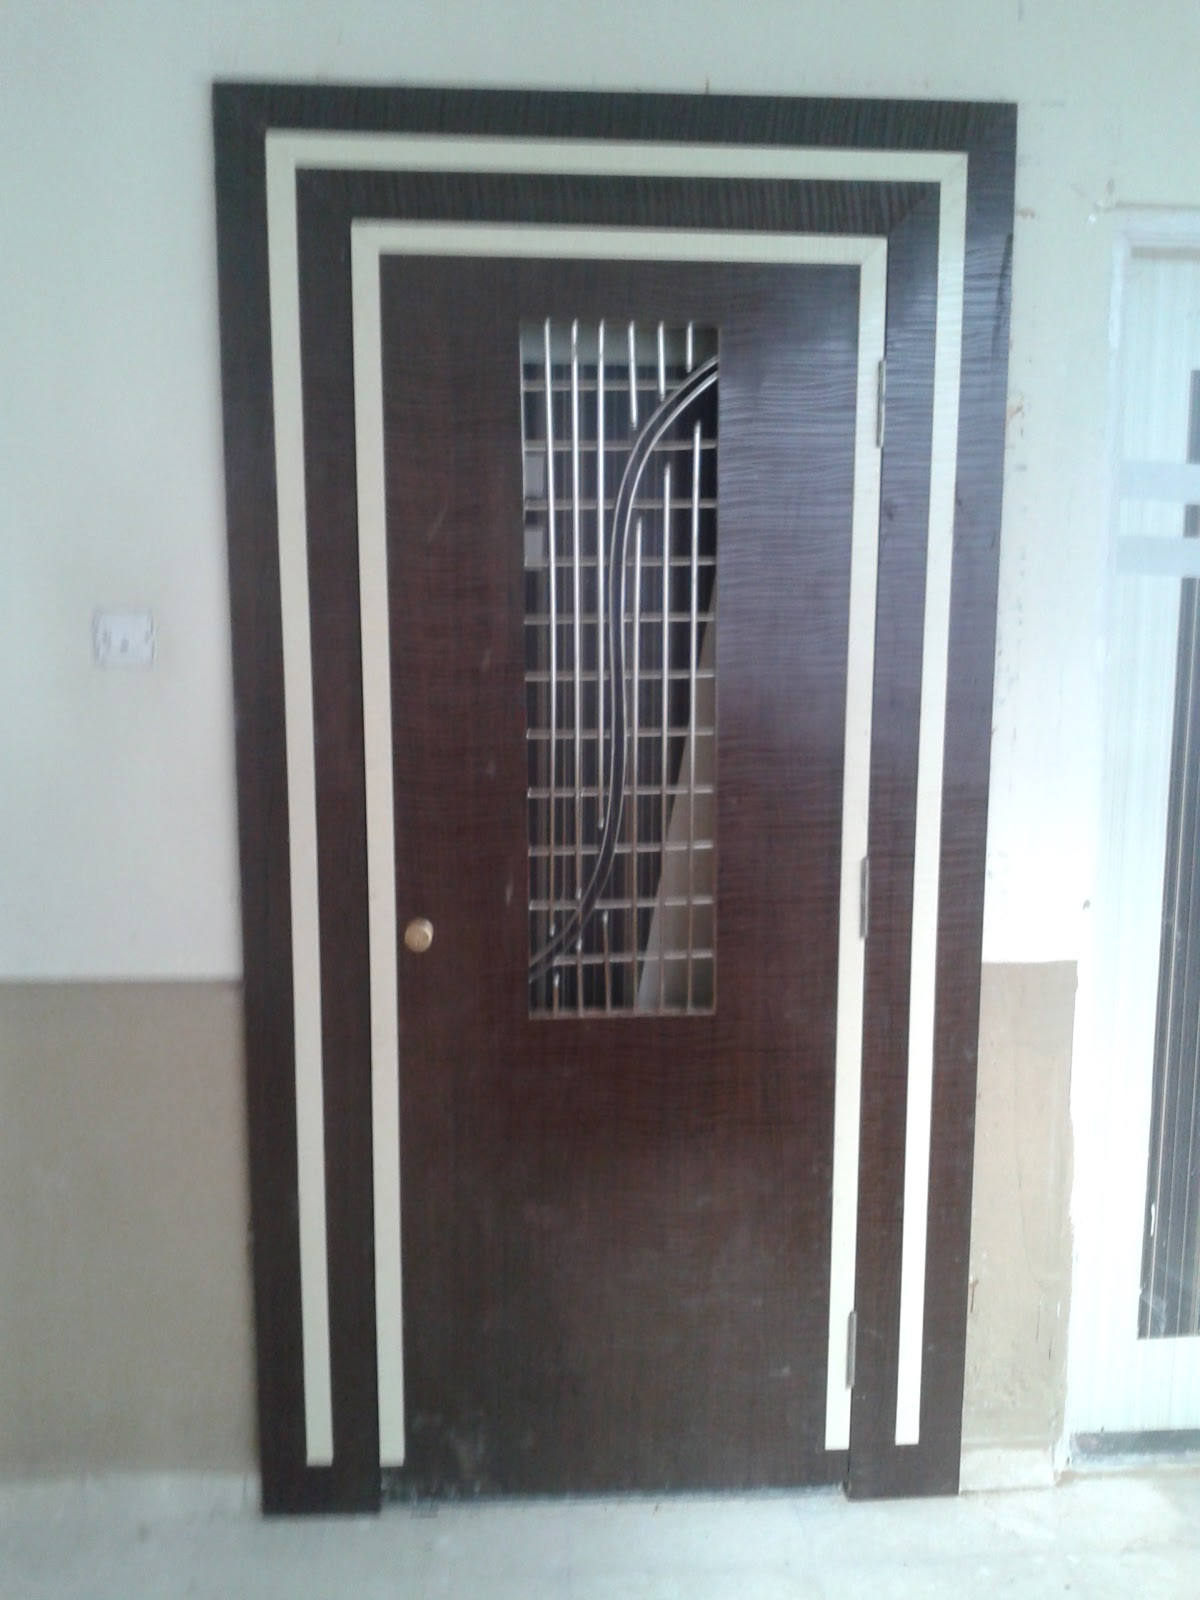 Sai Furniture Safety Door : 2013 01 25160624 from saifurniturepune.blogspot.com size 1200 x 1600 jpeg 181kB